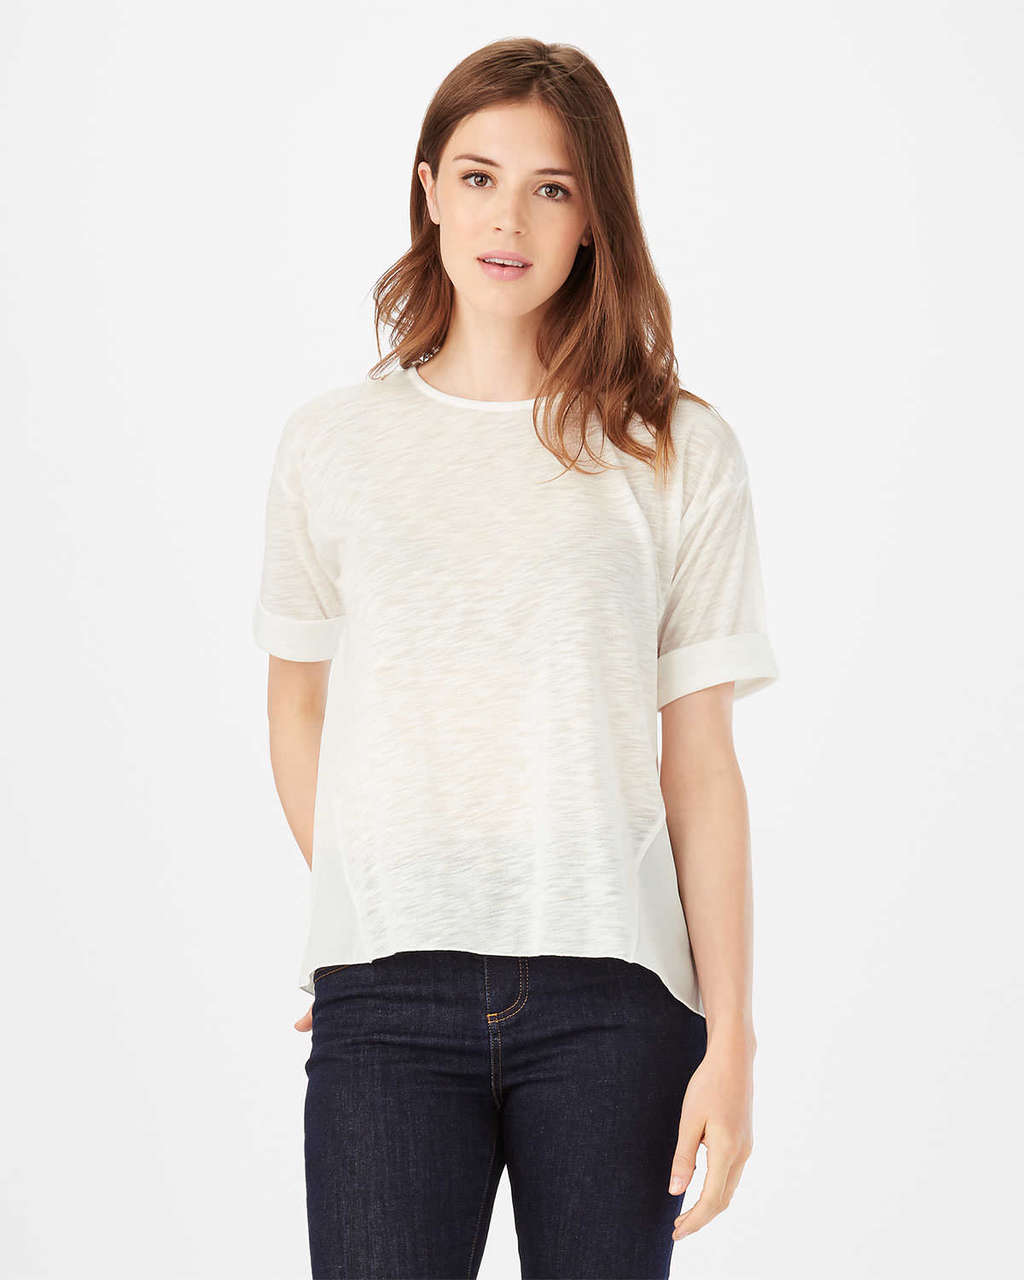 Sophie Slub Top - pattern: plain; style: t-shirt; predominant colour: white; occasions: casual; length: standard; fibres: polyester/polyamide - 100%; fit: body skimming; neckline: crew; sleeve length: short sleeve; sleeve style: standard; pattern type: fabric; texture group: other - light to midweight; season: s/s 2016